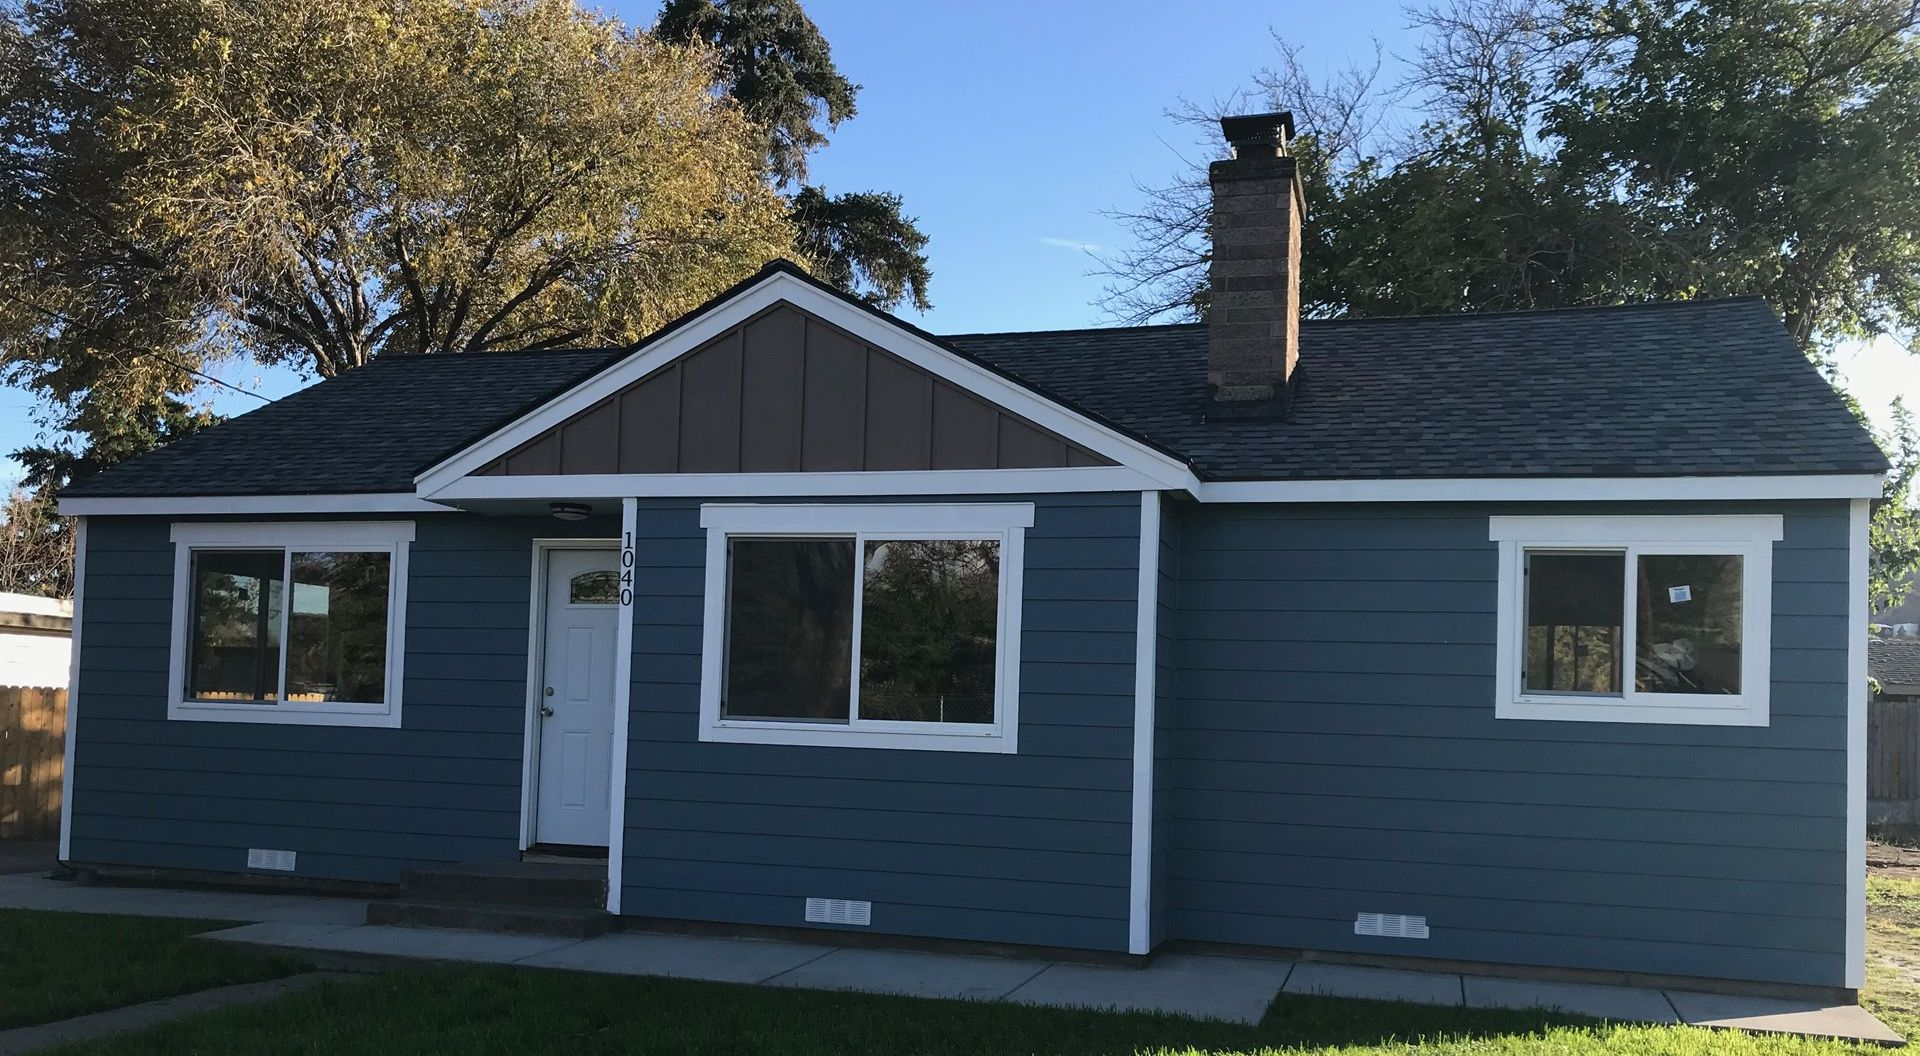 1040 Irvine Ave The Dalles Price Drop